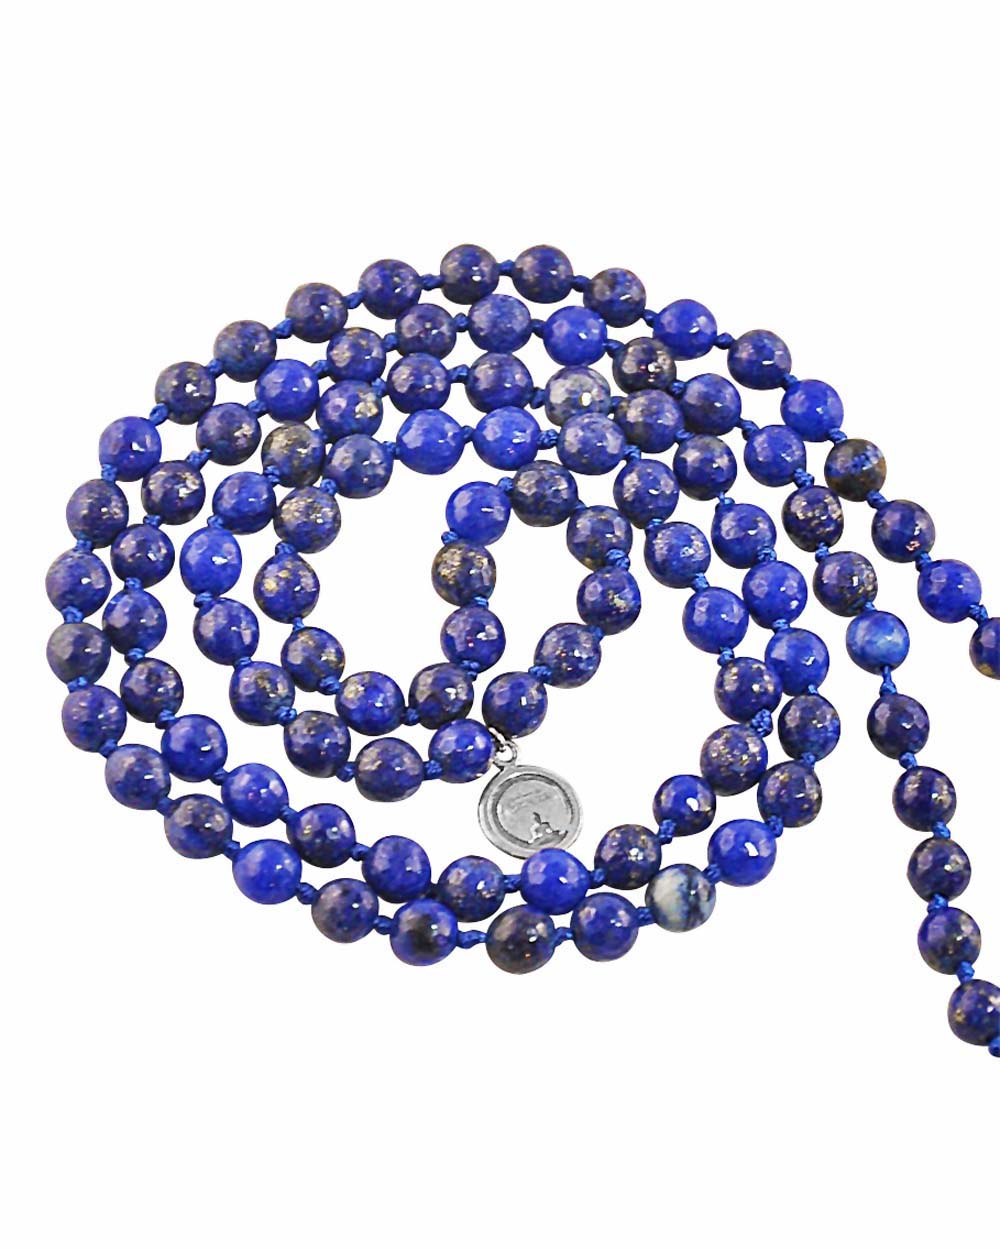 Peaceful Progression Mala Lapis Lazuli